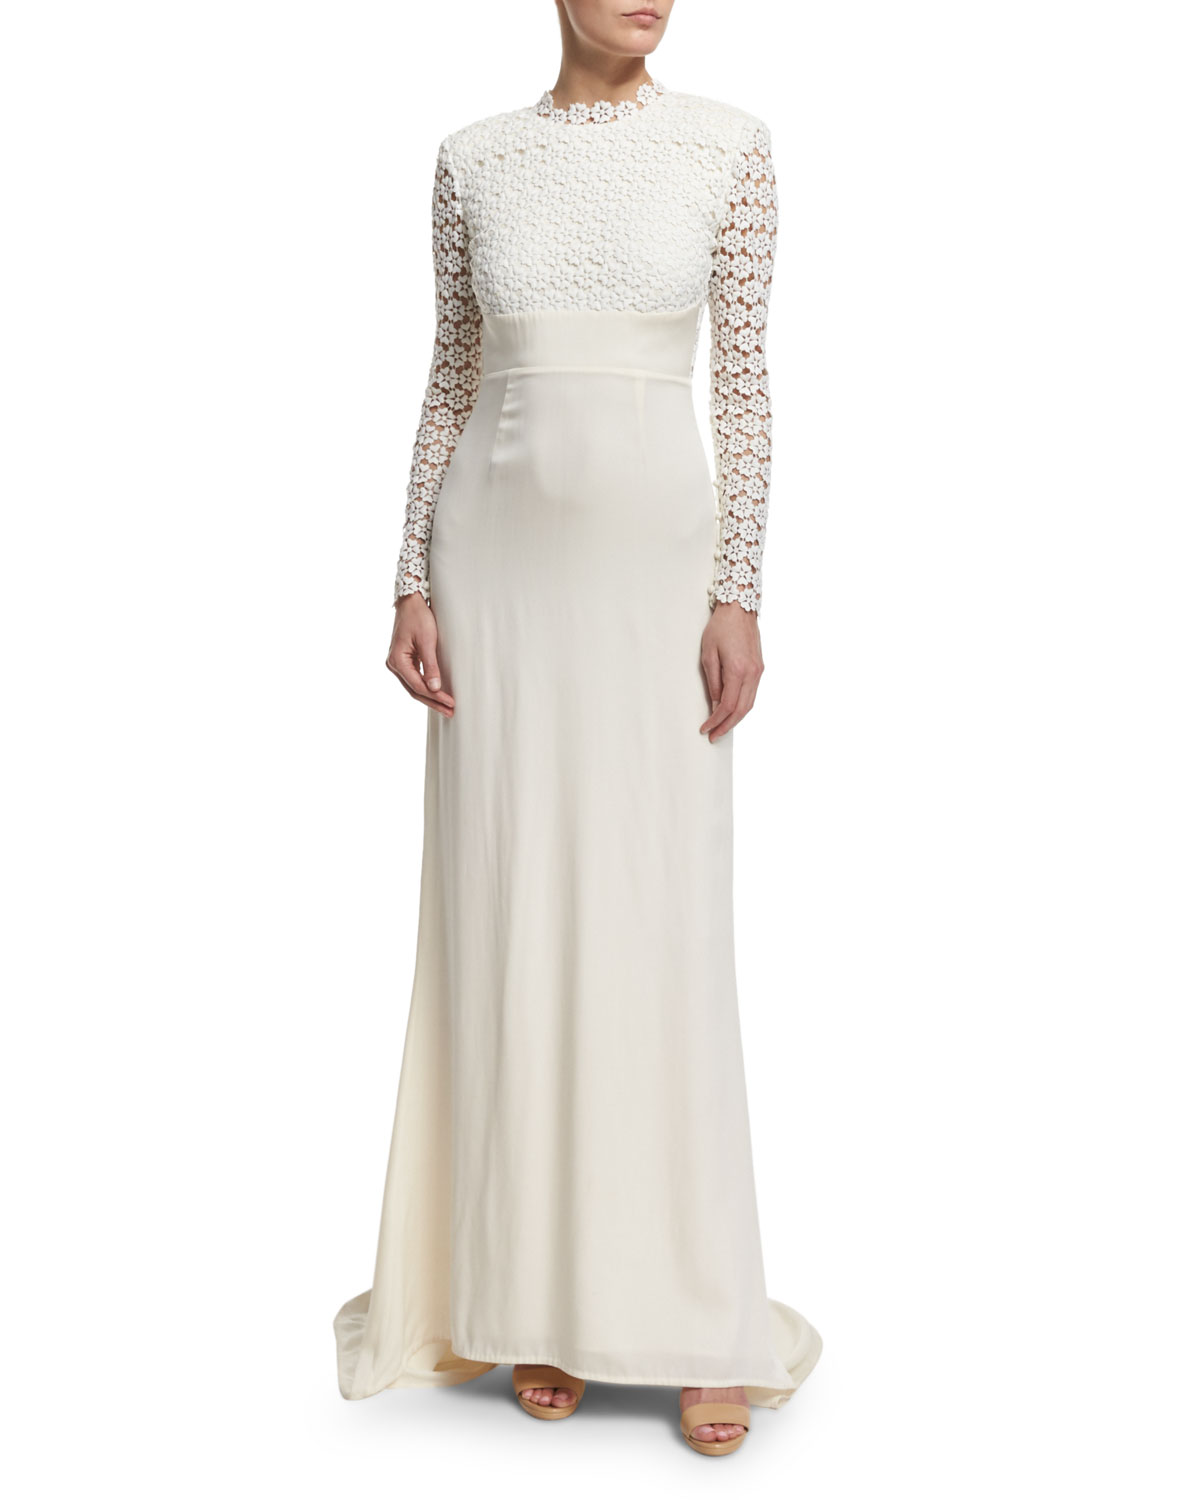 Self Portrait Eva Long-Sleeve Open-Back Combo Gown, Off White, Size: 4